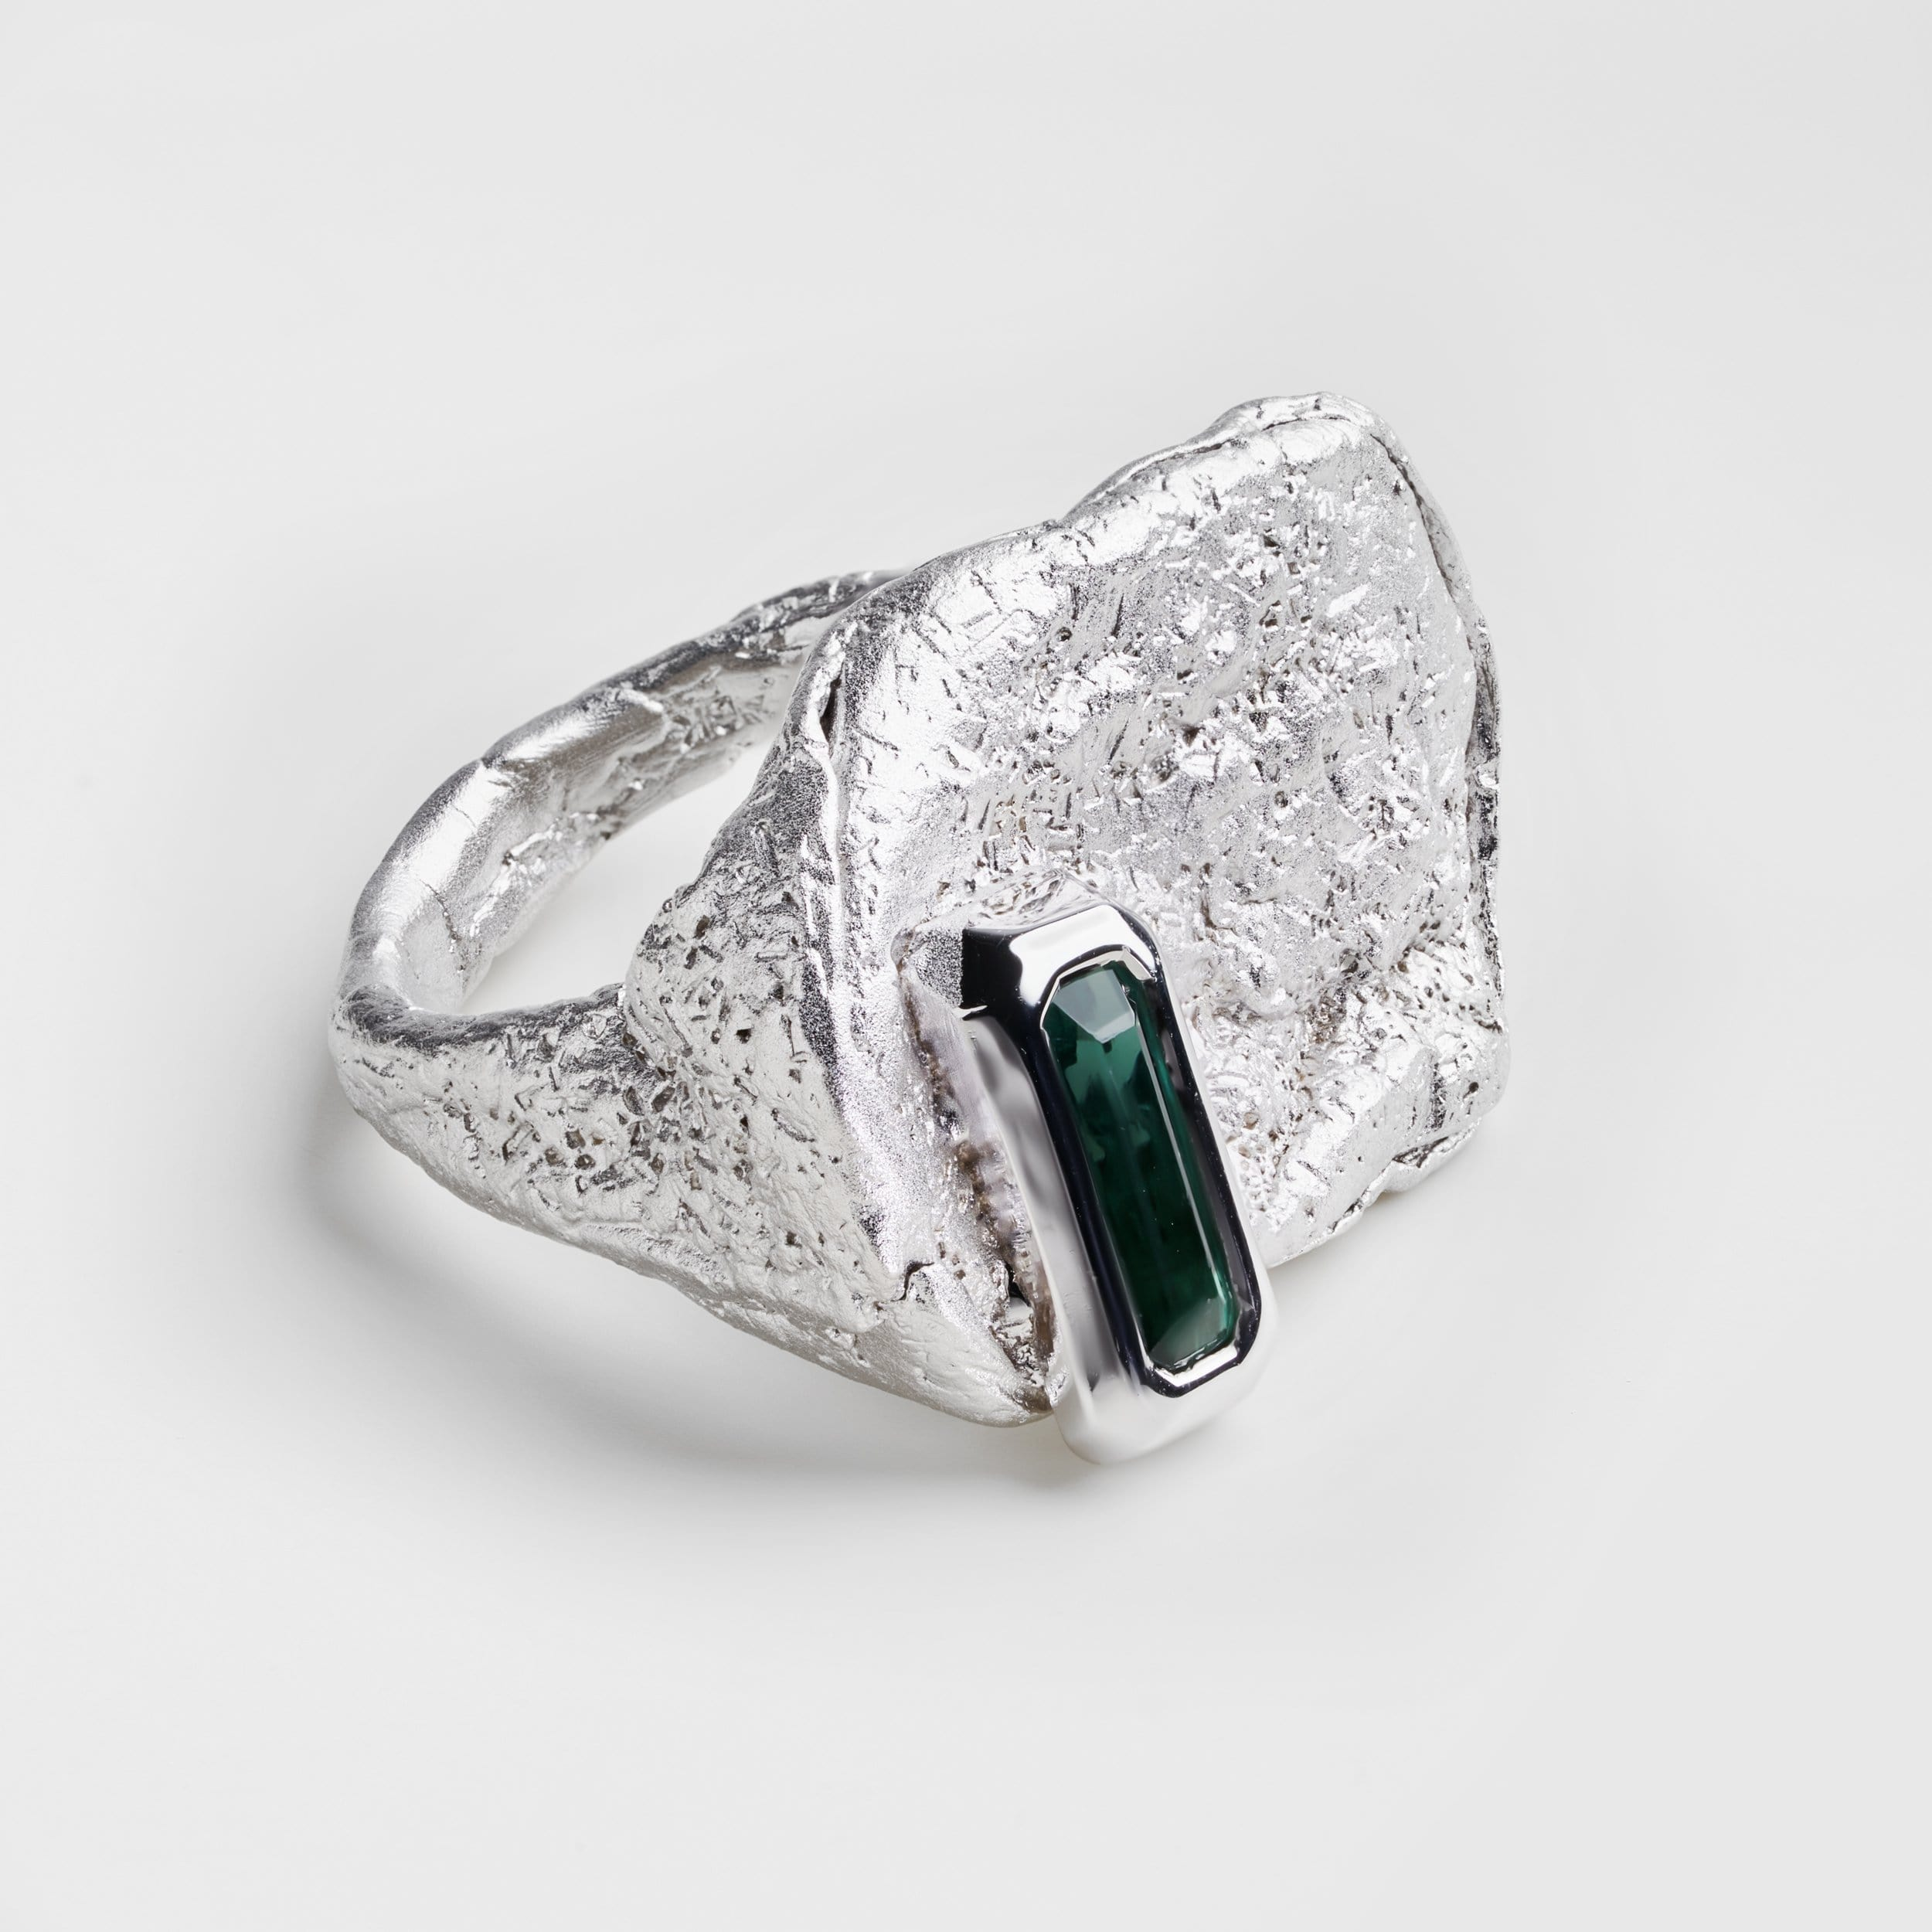 Neri Green Tourmaline Ring